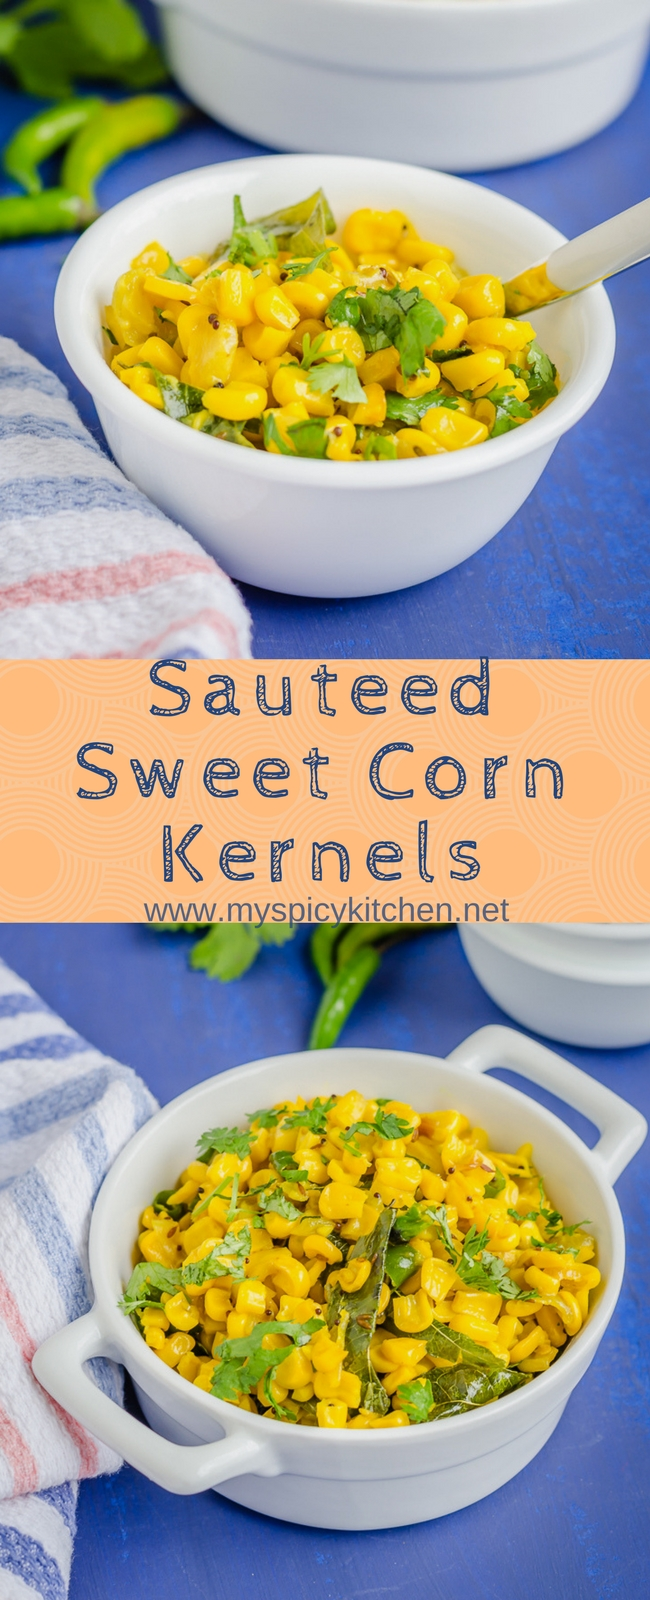 A bowl and a casserole of sauteed sweet corn kernels long Pinterest pin